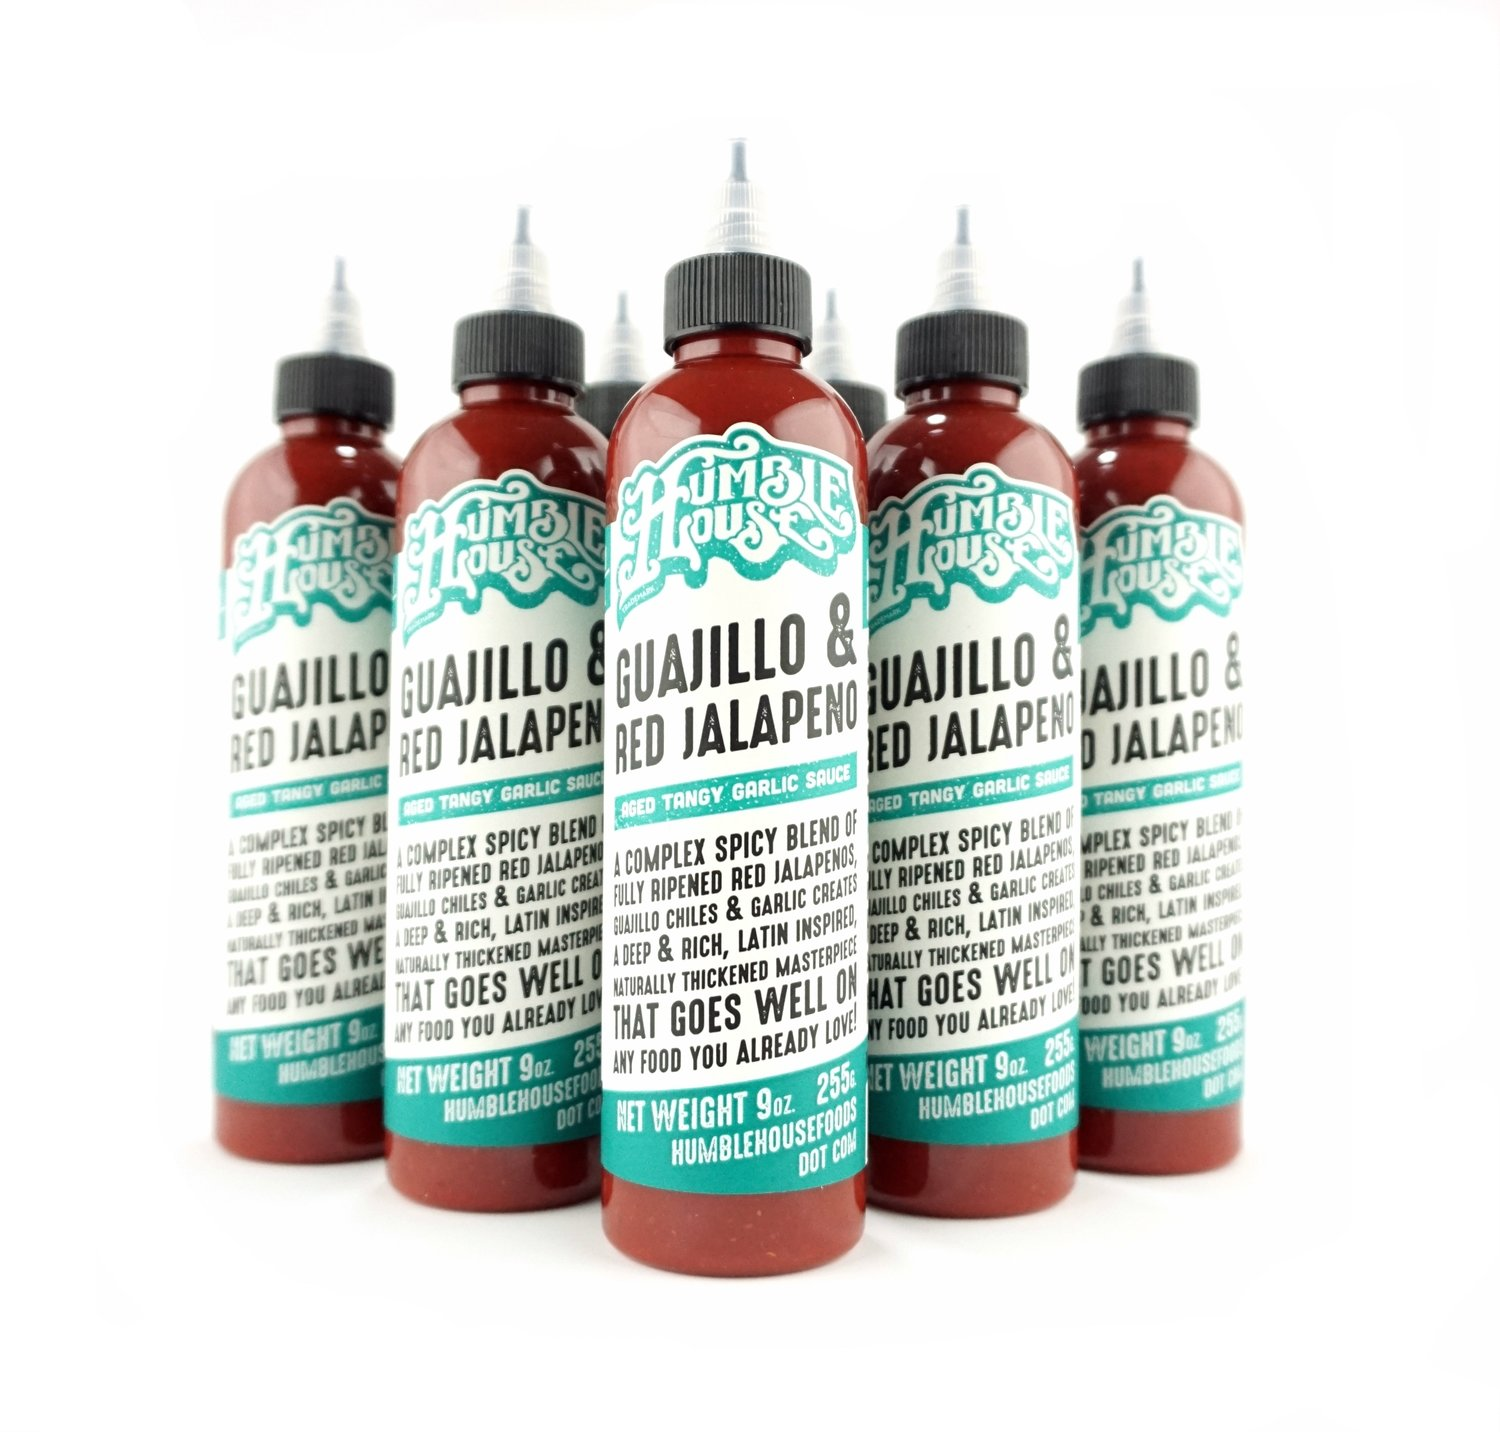 Case of Guajillo & Red Jalapeno Hot Sauce